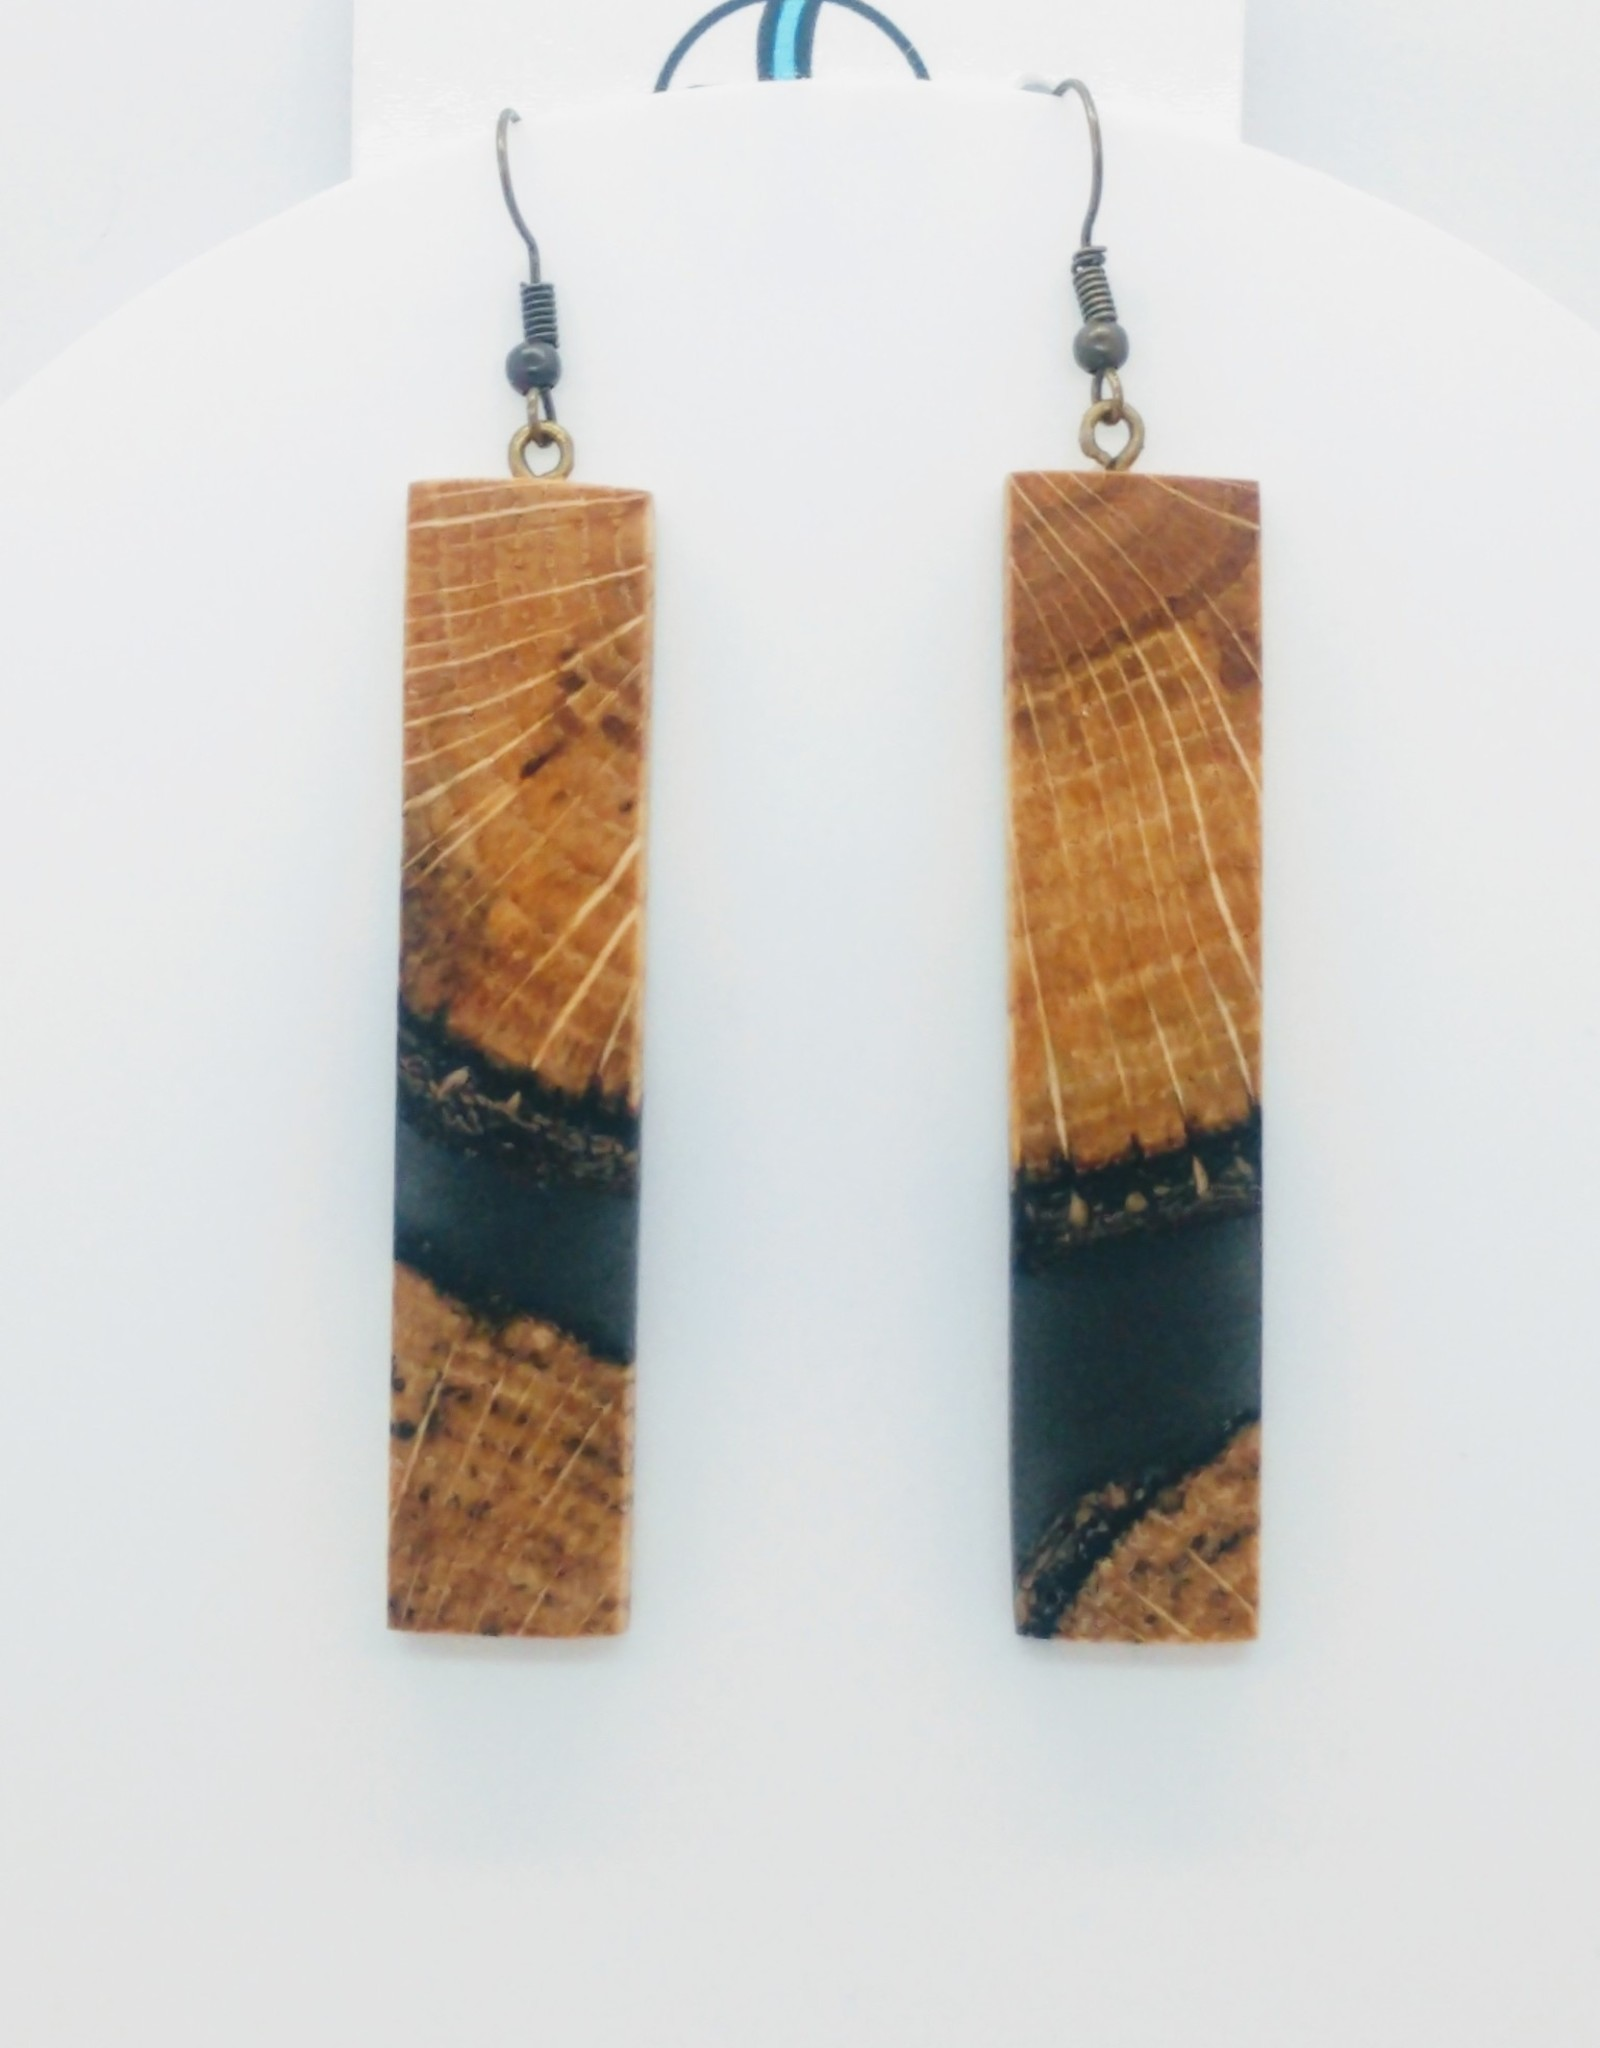 Resin River Designs Resin River Designs - Wood and Resin Earring w/Steel Fish Hooks - ID103